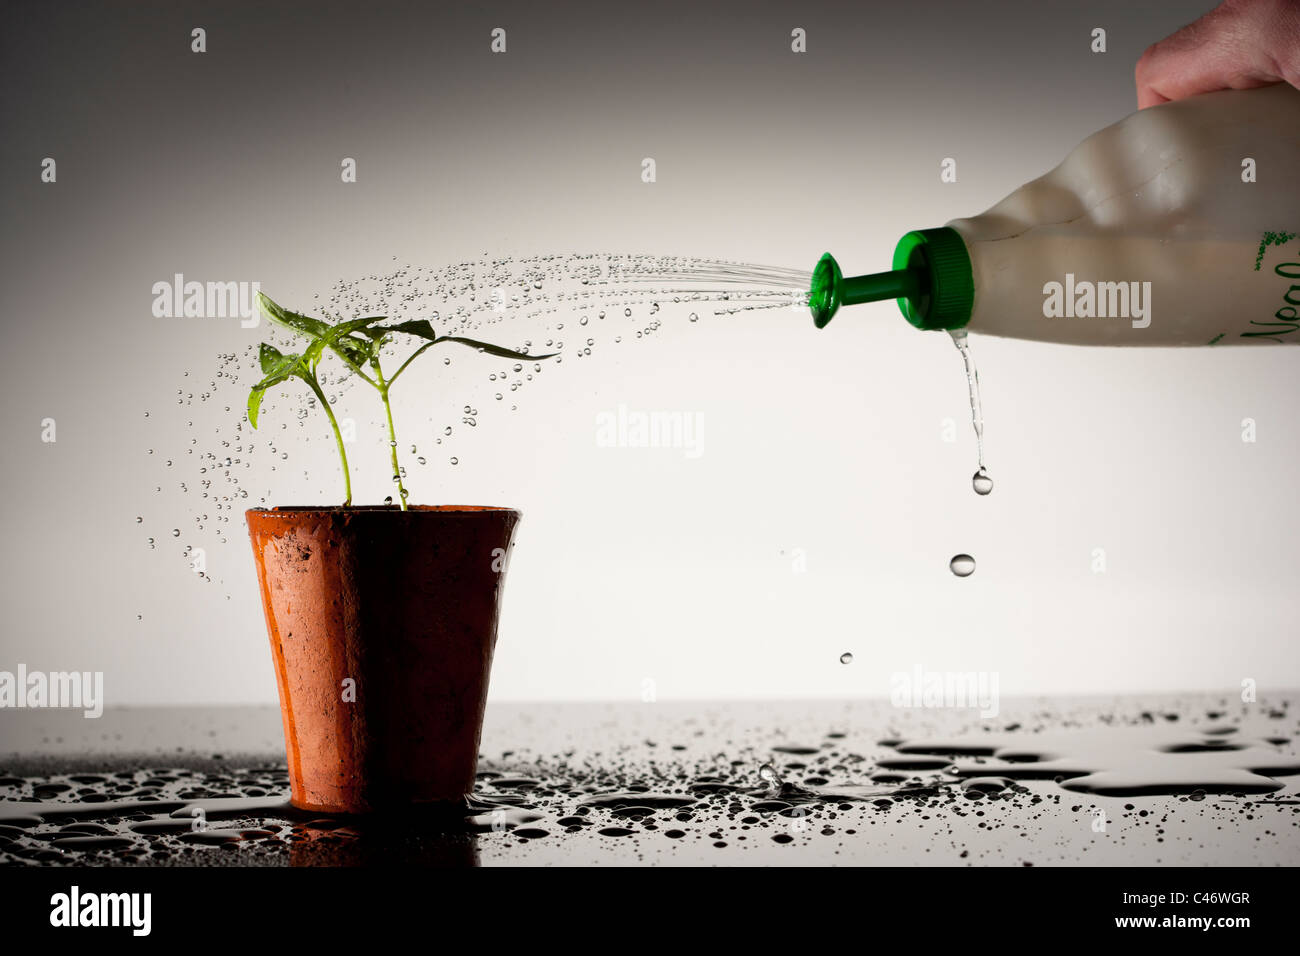 Seedling in terracotta pot being watered - Stock Image